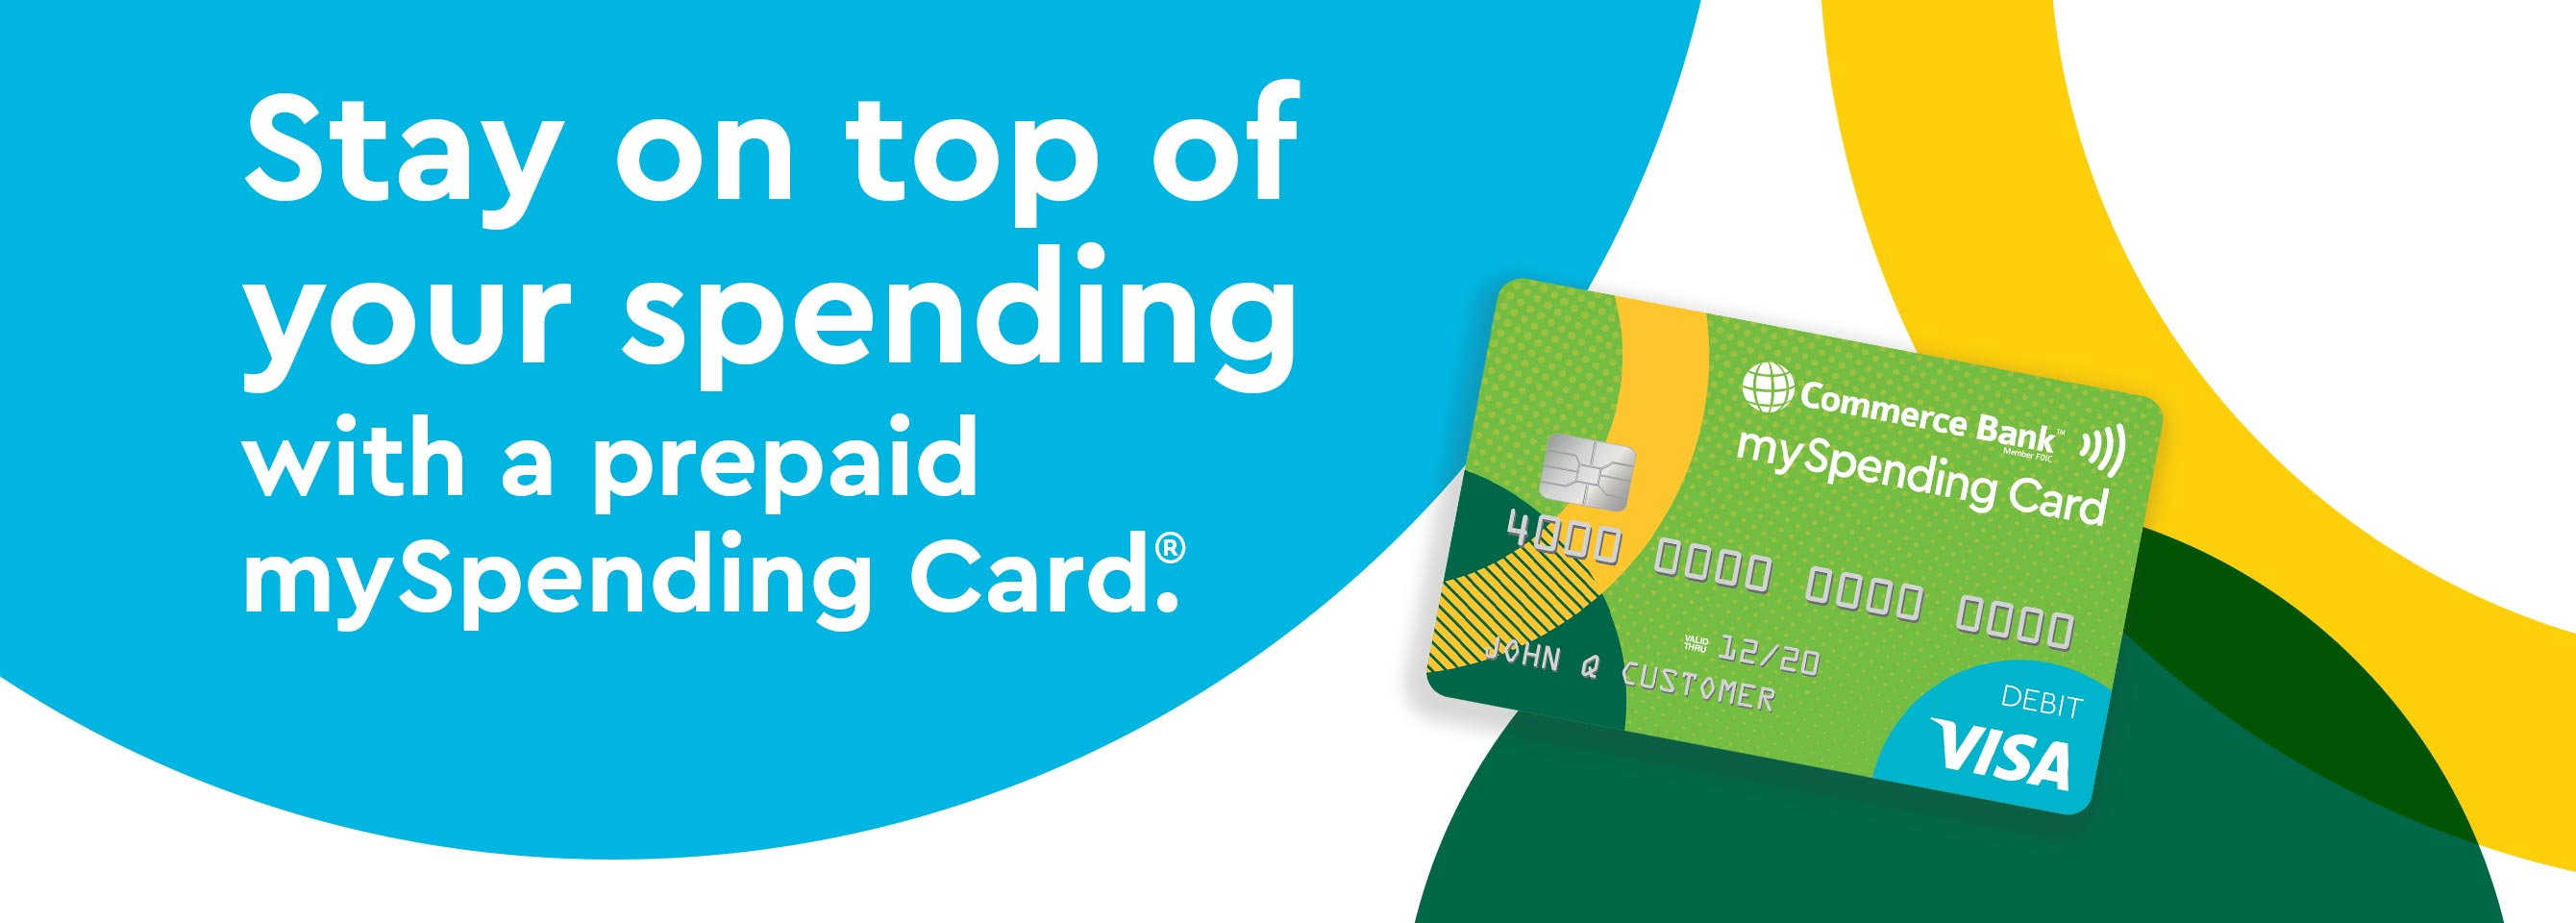 Stay on top of your spending with the mySpending Card